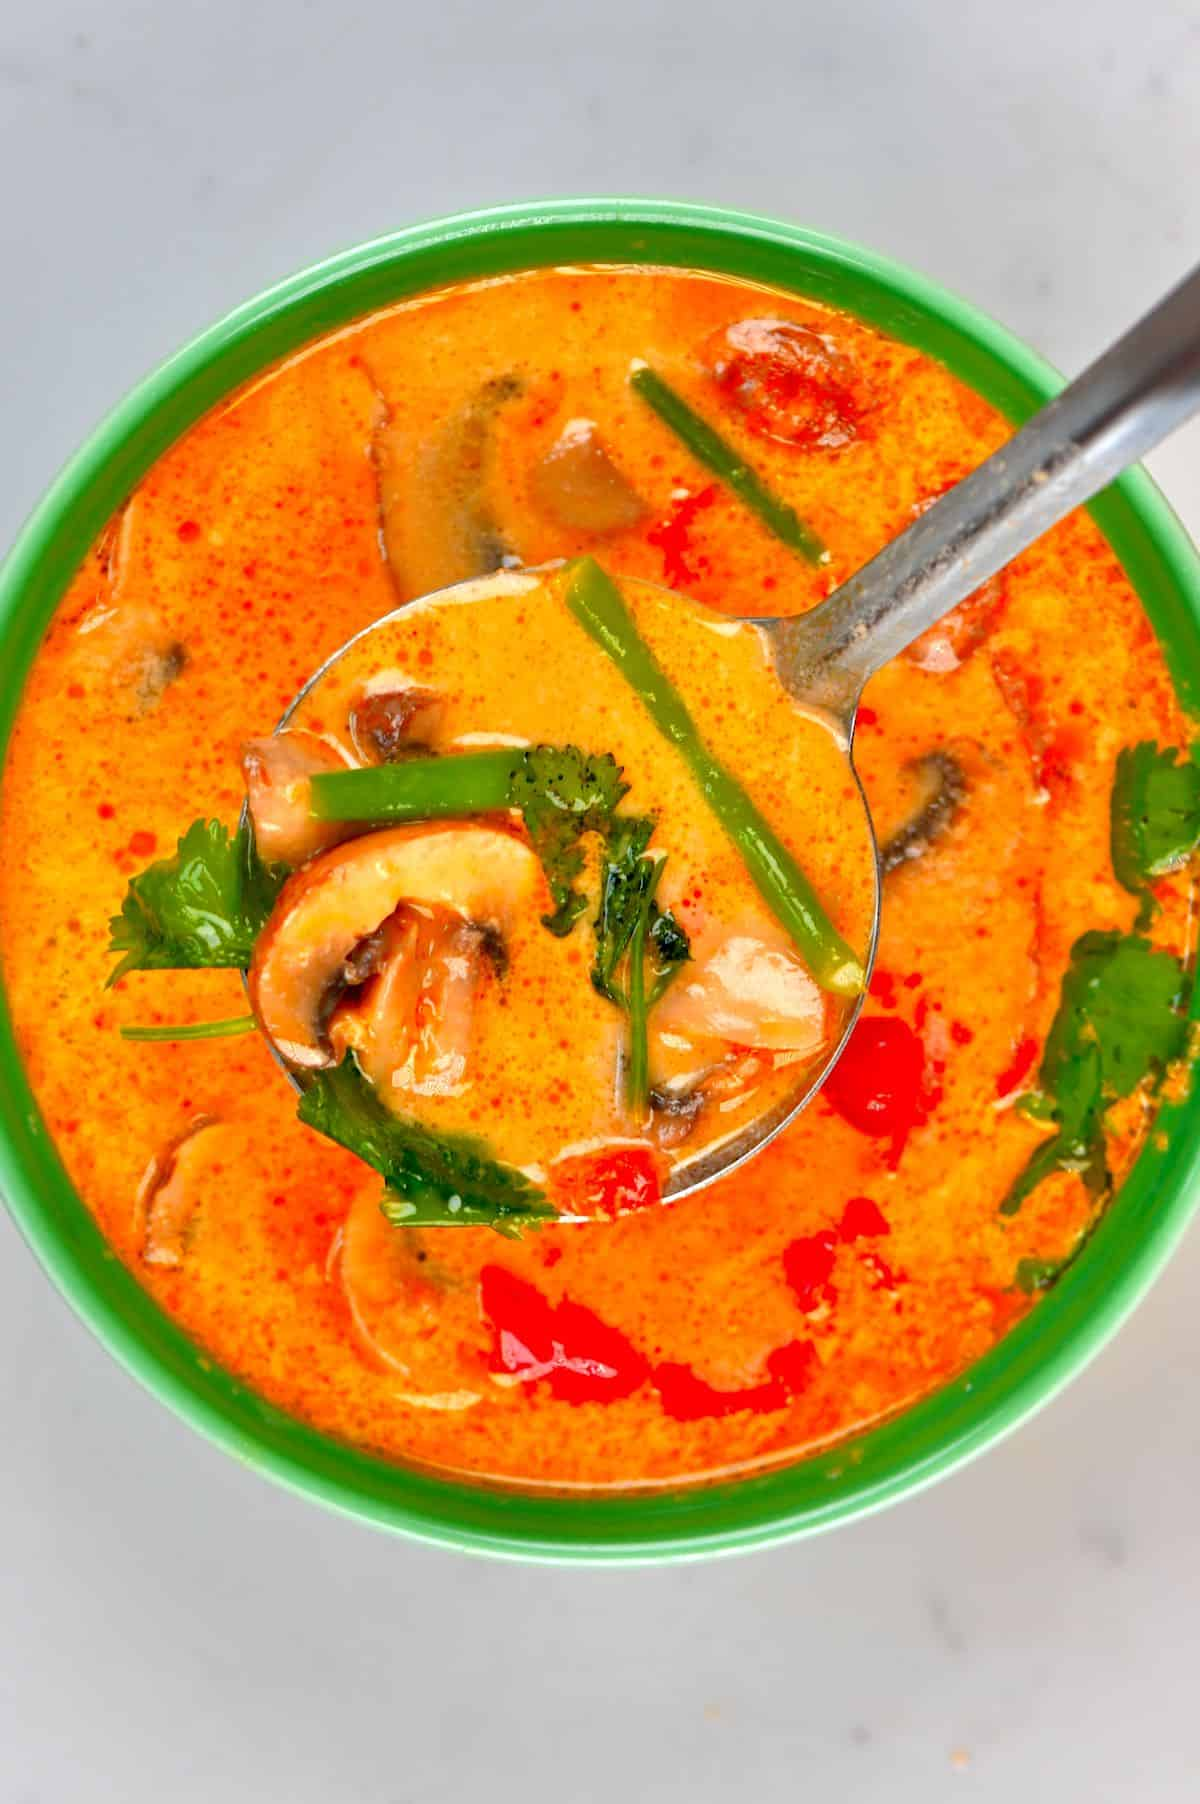 A bowl of Tom Yum Soup